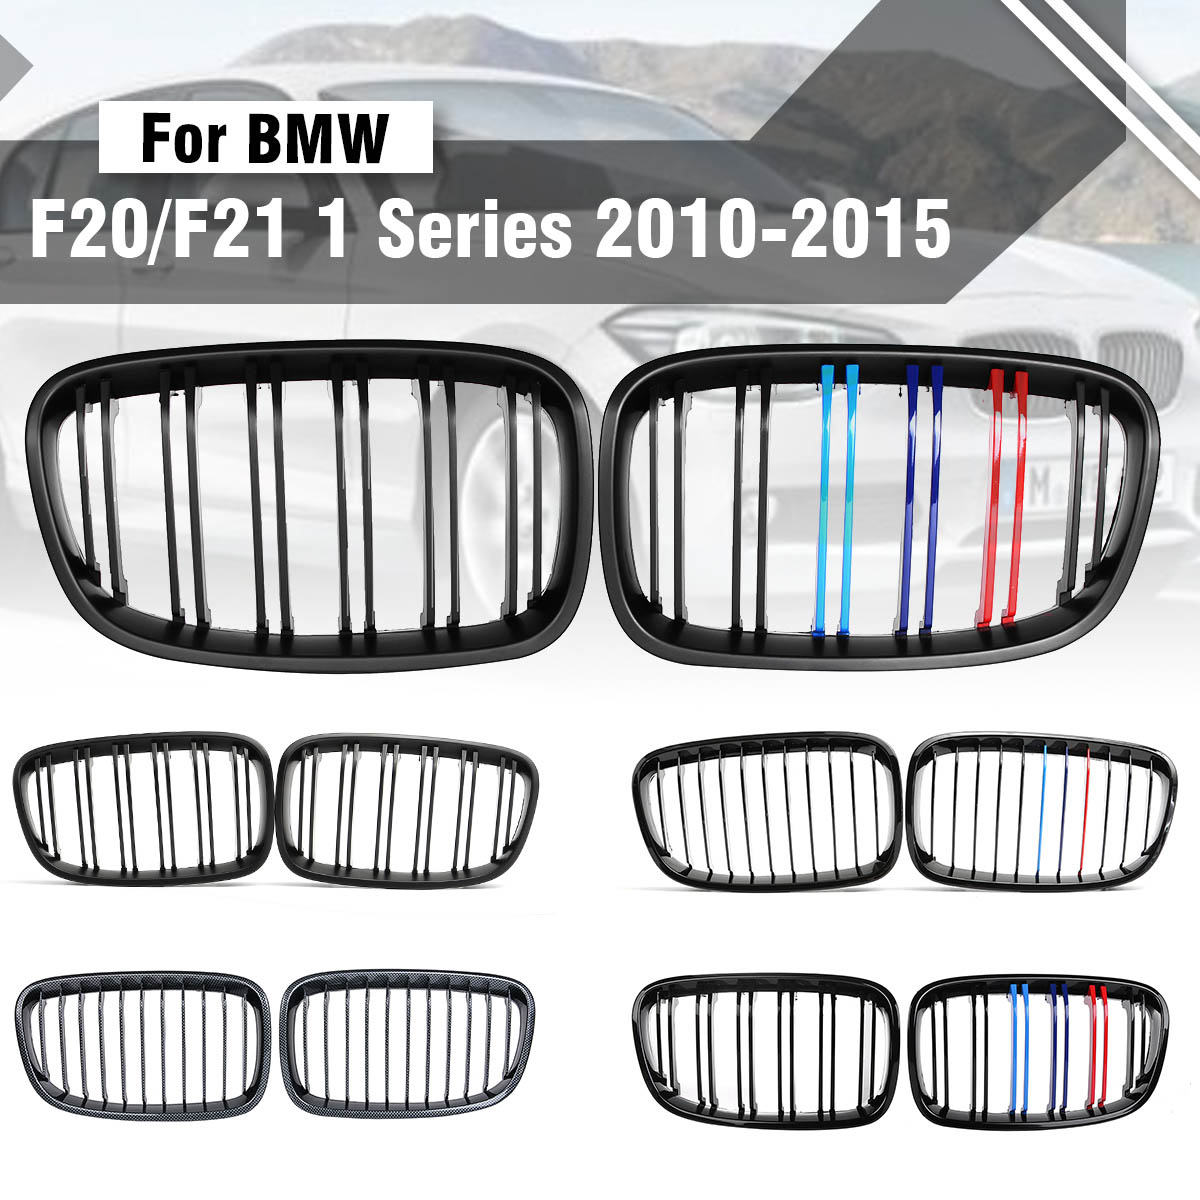 for BMW F20 F21 1 Series 2012 2013 2014 2015 Pair ABS Replacement Matt Gloss Black M Front Kidney Grille Grill Double Line Slat car bight glossy black double slat front grille grill for bmw e92 lci facelift e93 2011 2012 2013 c 5